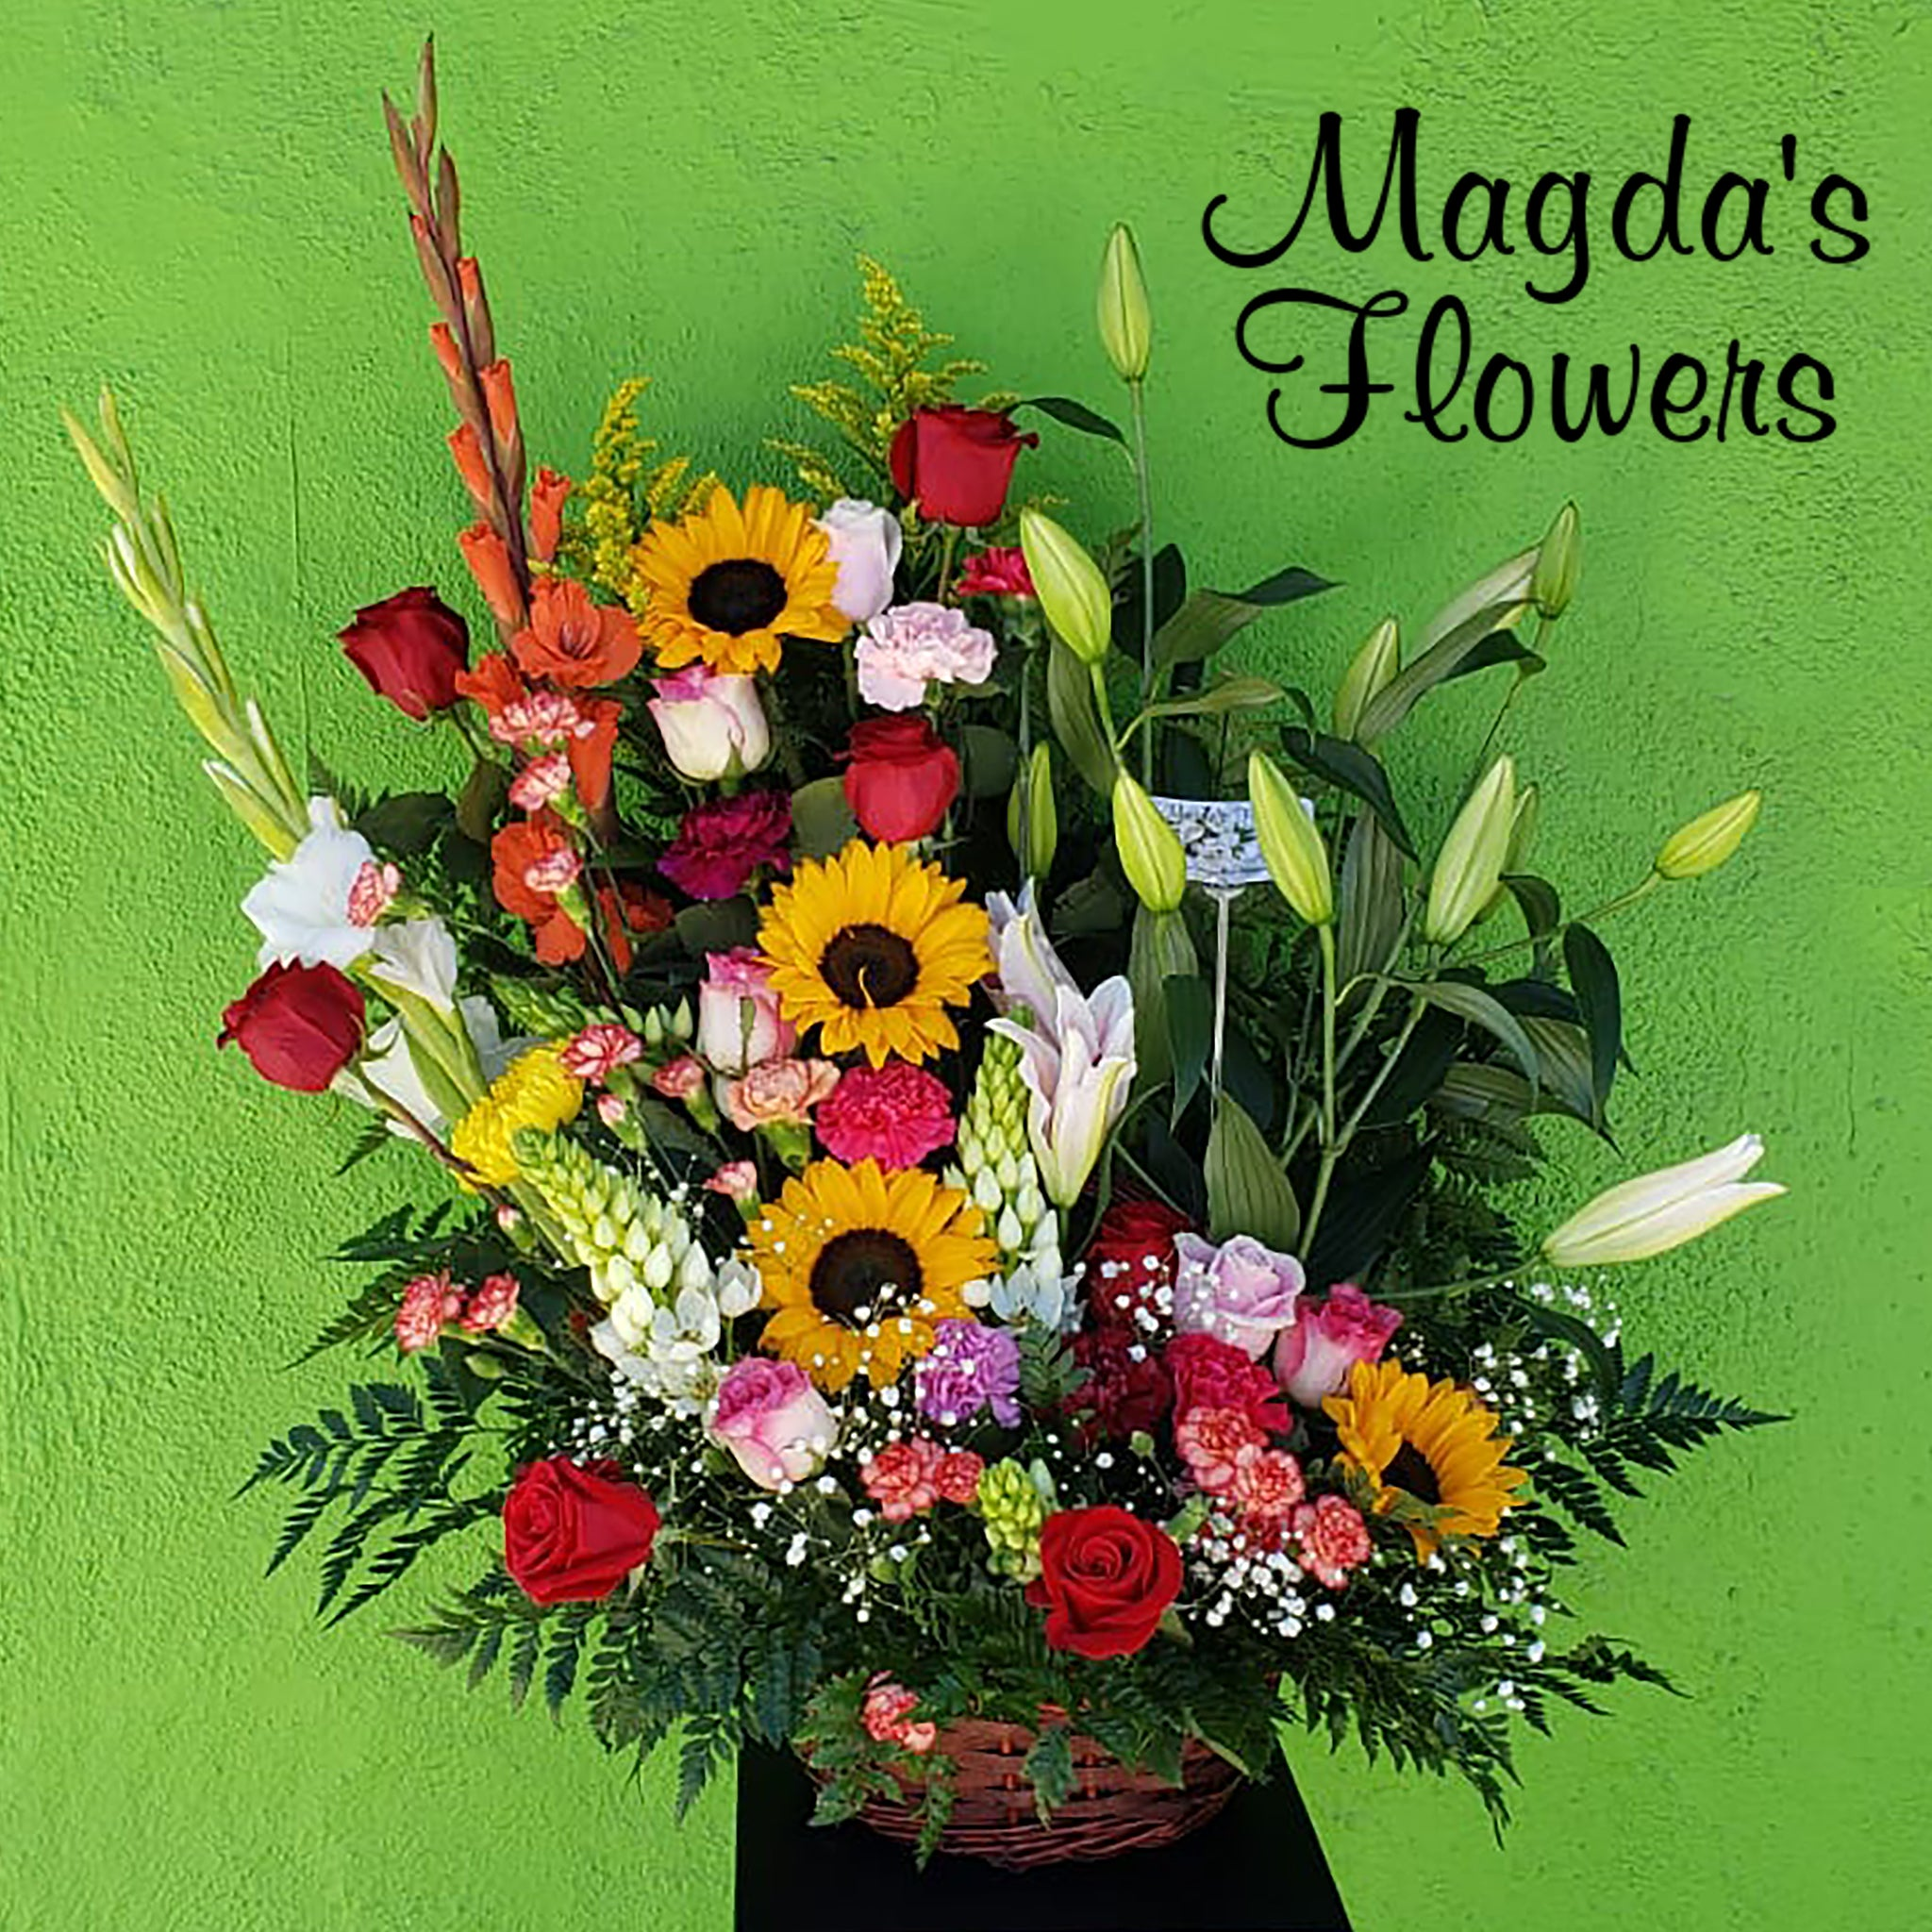 colorful gladiolas, roses, sunflowers, stargazer lilies, carnations, mums and more! Magdas Flowers, Salinas California.